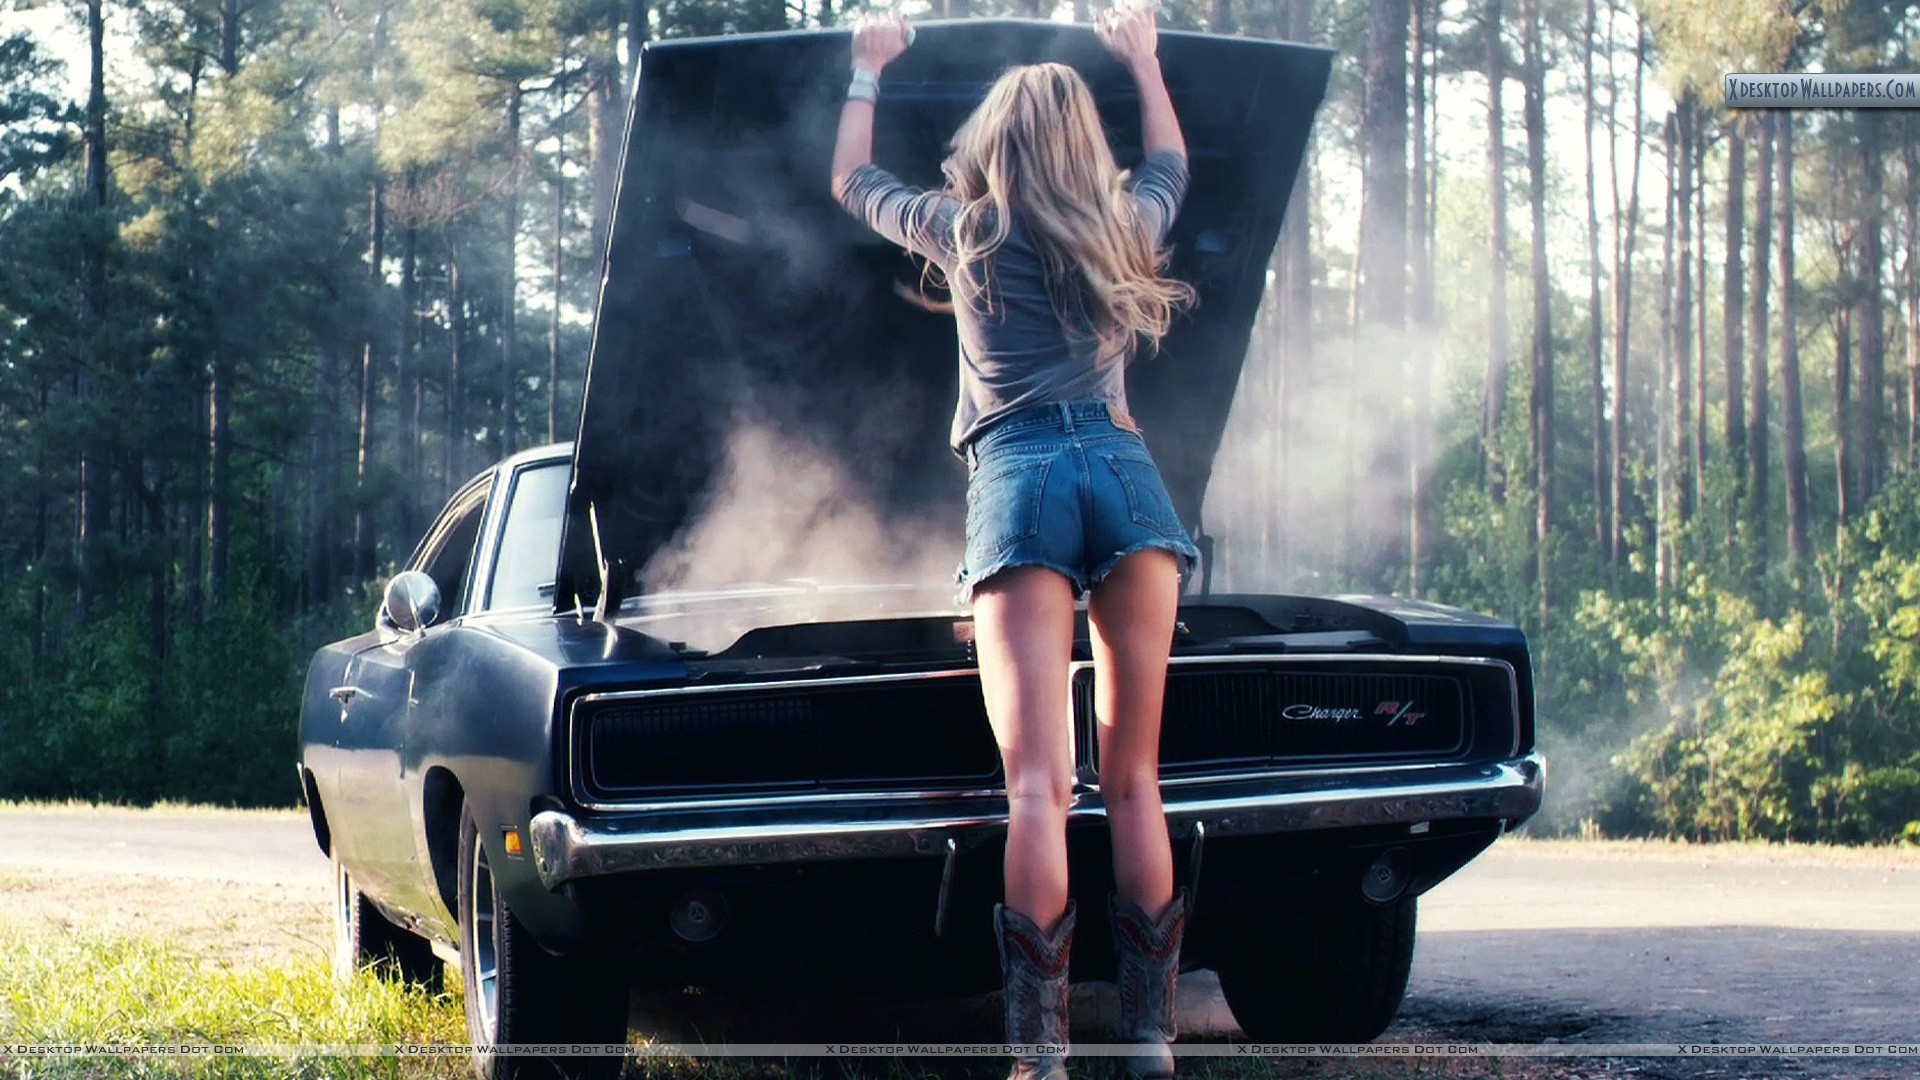 Amber Heard Drive Angry Hd Images & Pictures - Becuo